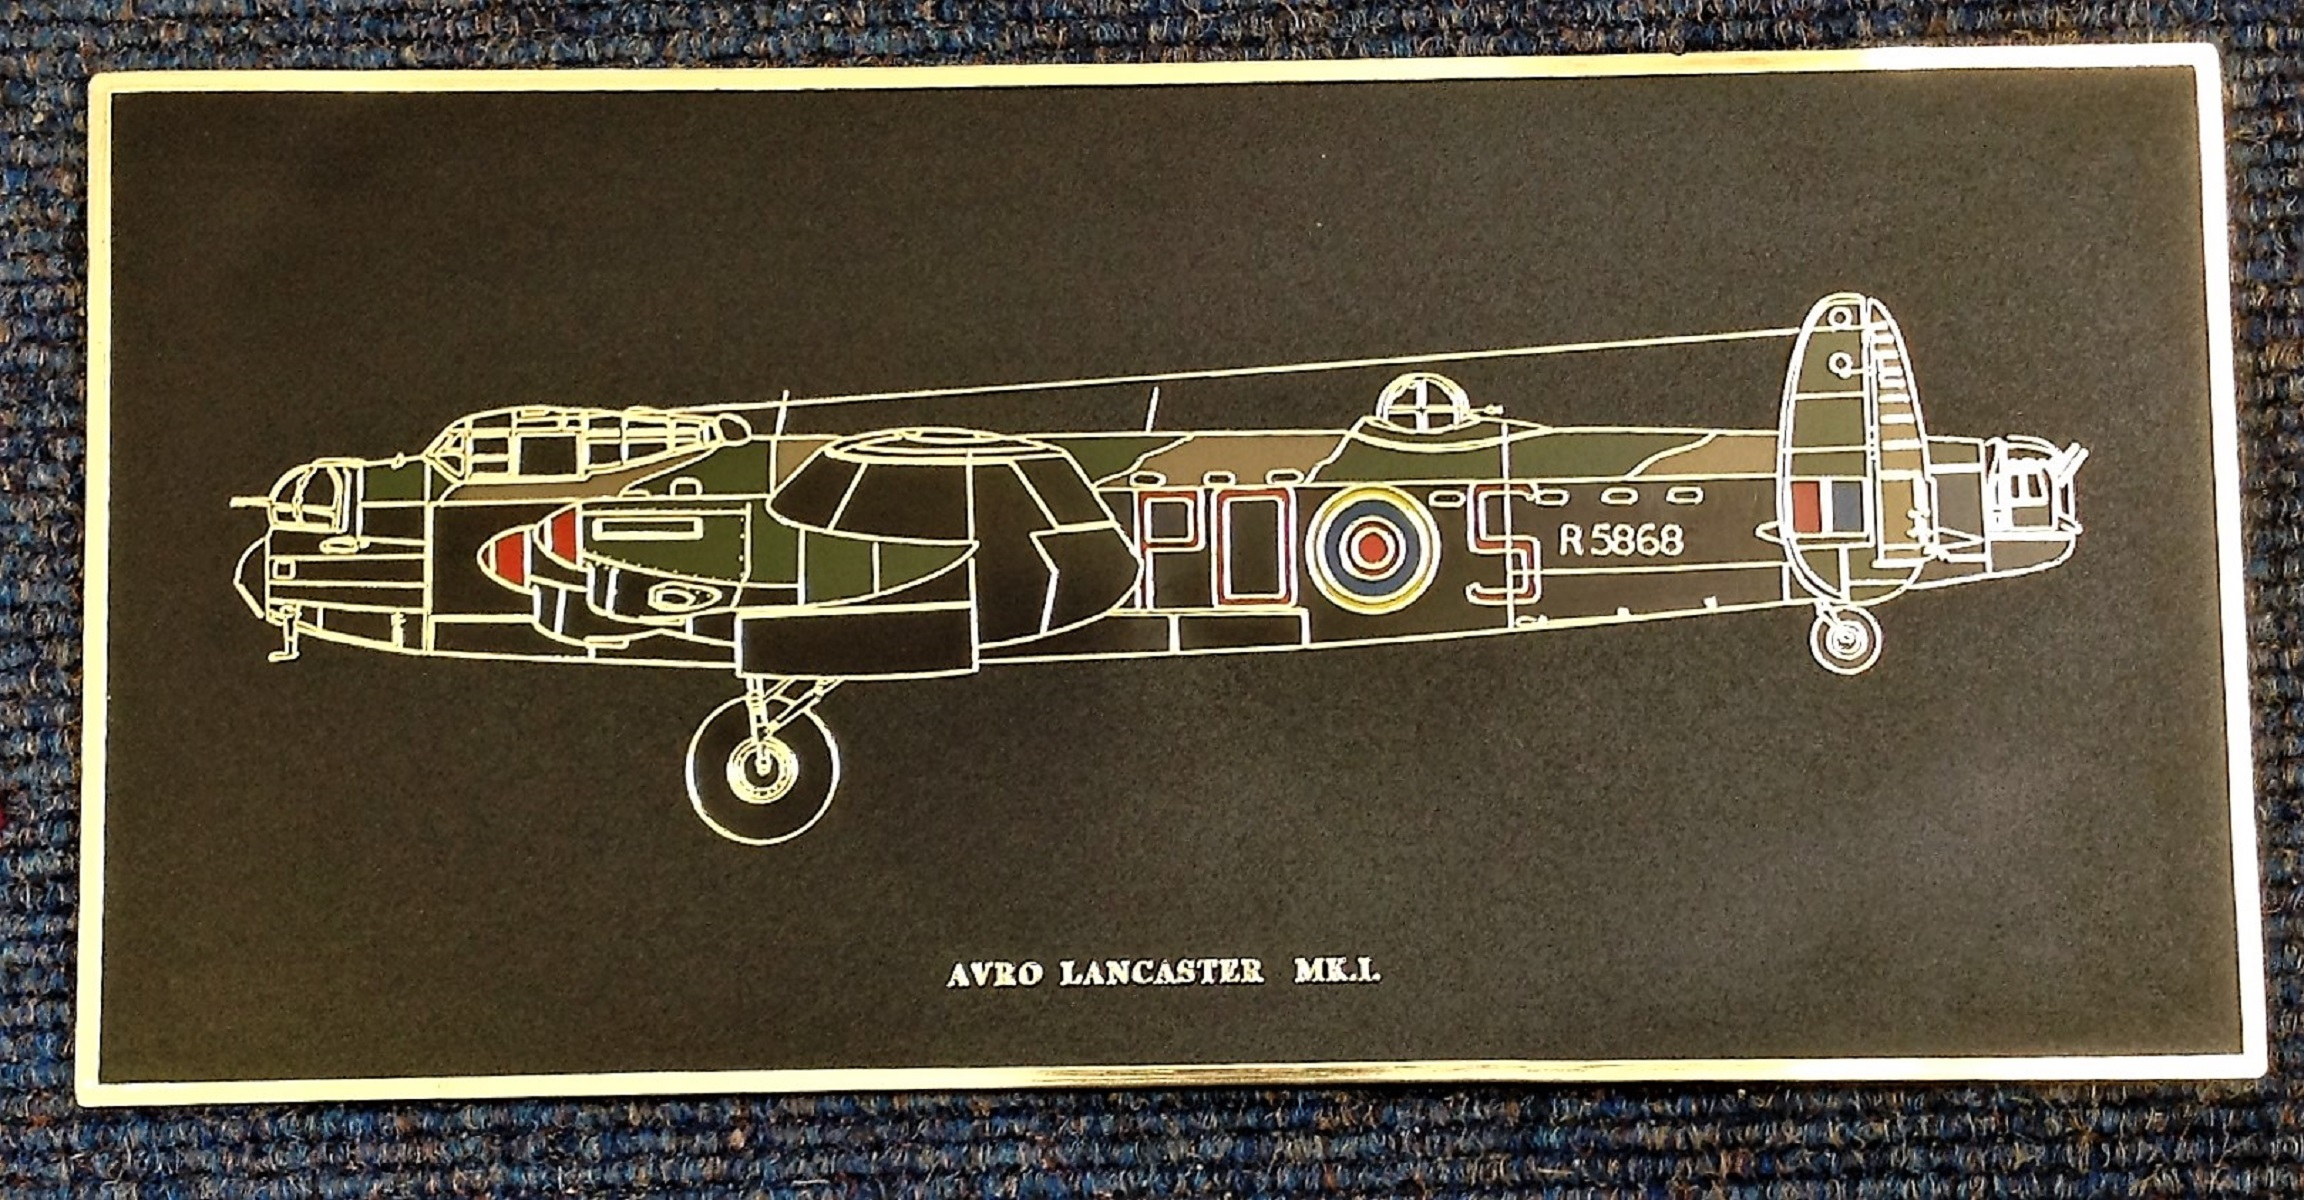 World War II signed Lancaster hardback book by the author John Nichol includes 27 Bomber command